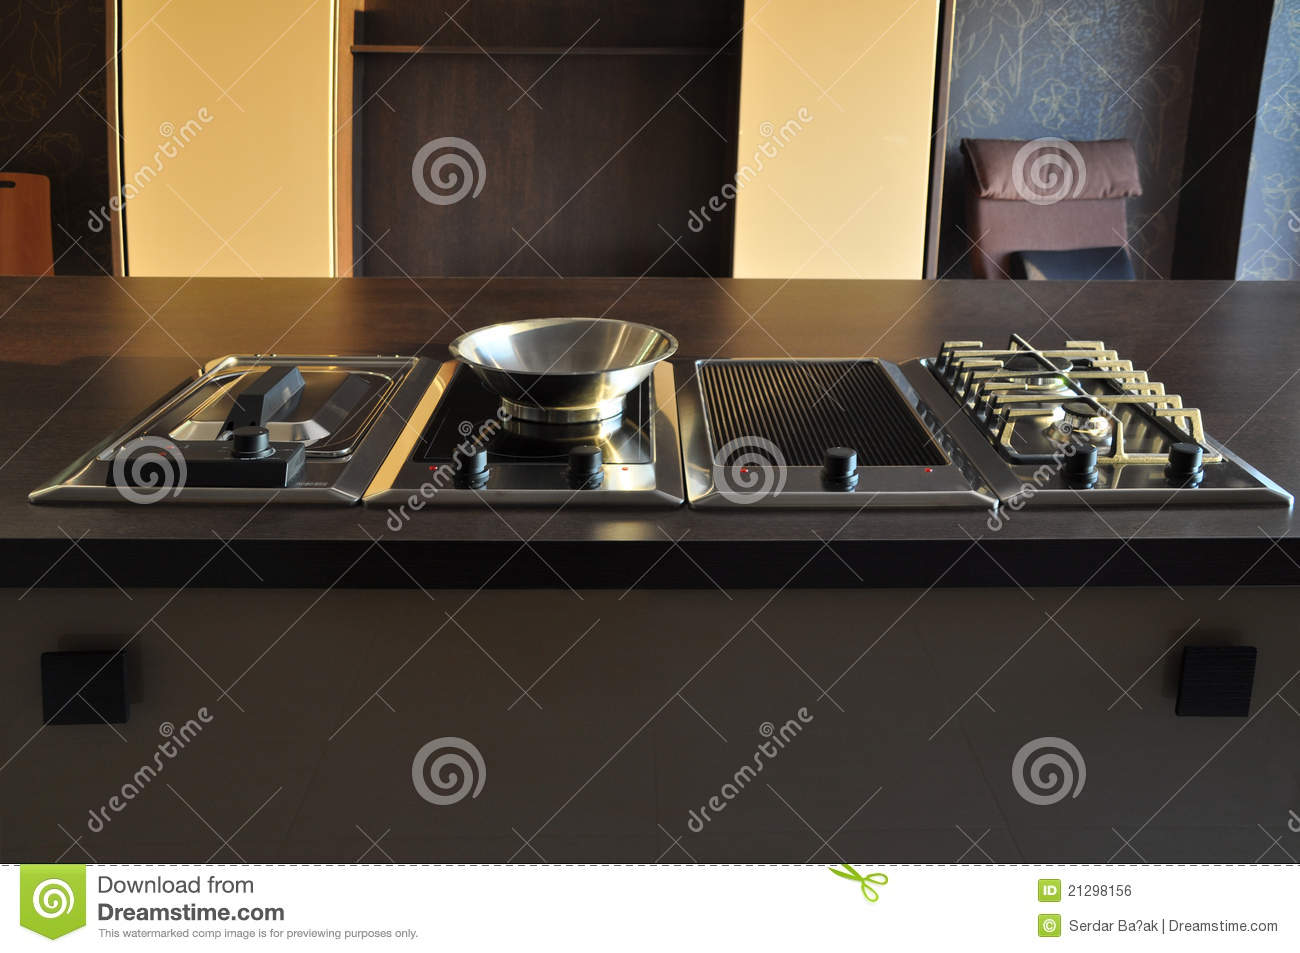 Cooker Royalty Free Stock Image - Image: 21298156